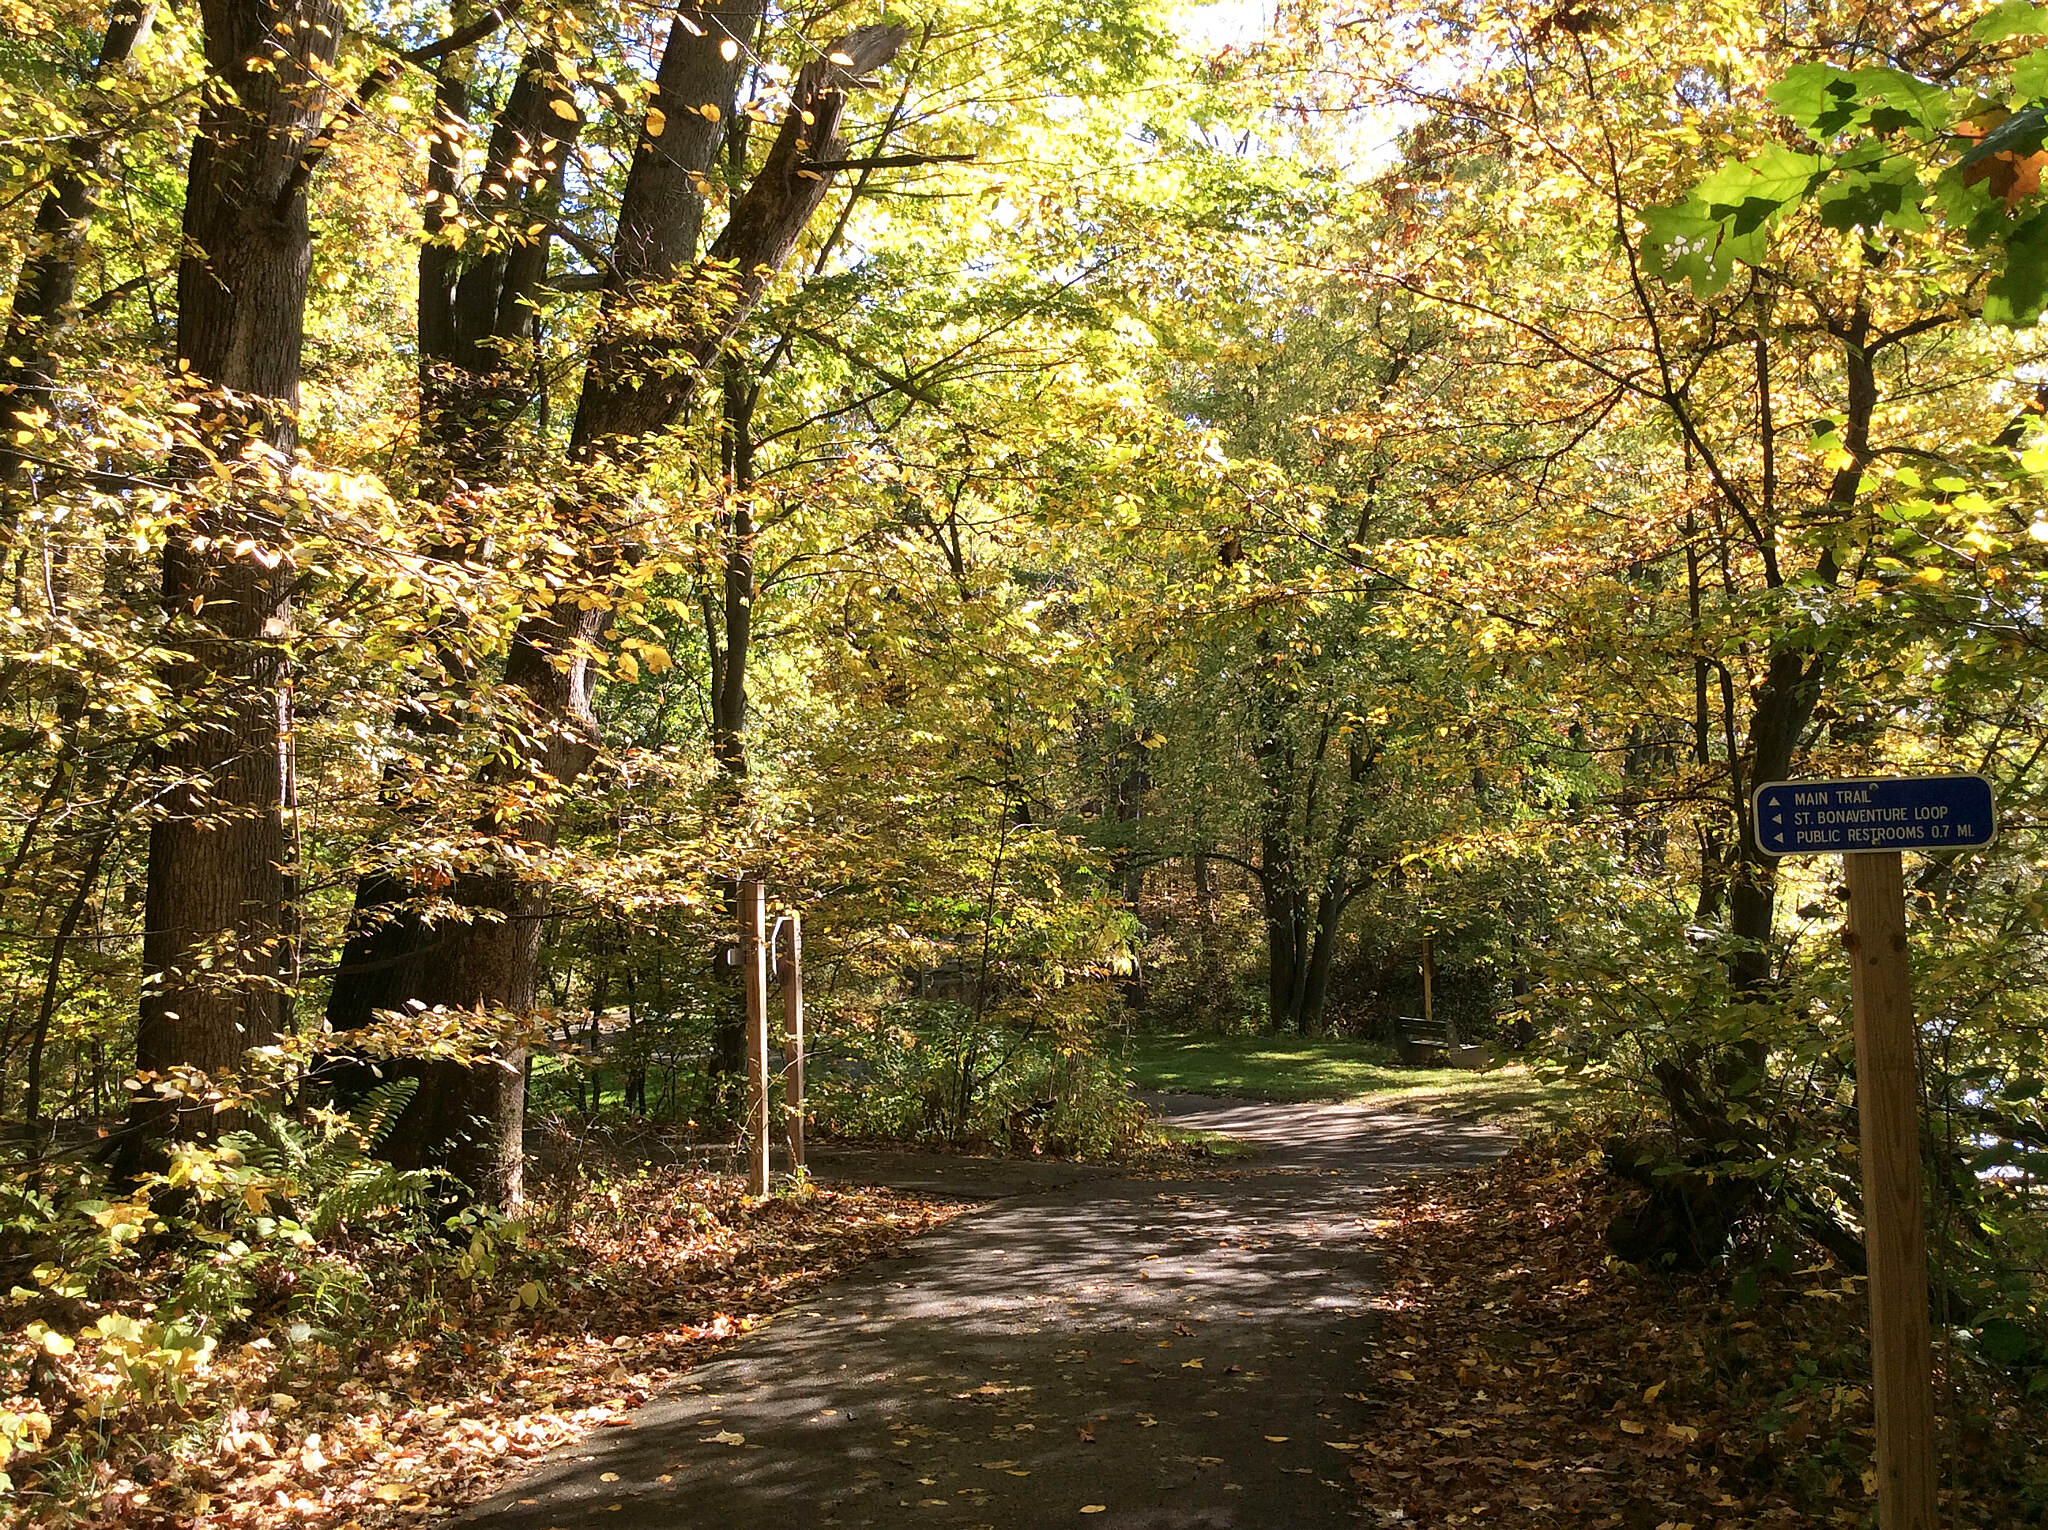 Allegheny River Valley Trail The tree-lined trail offers beautiful fall foliage. Photo courtesy Cattaraugus County Tourism